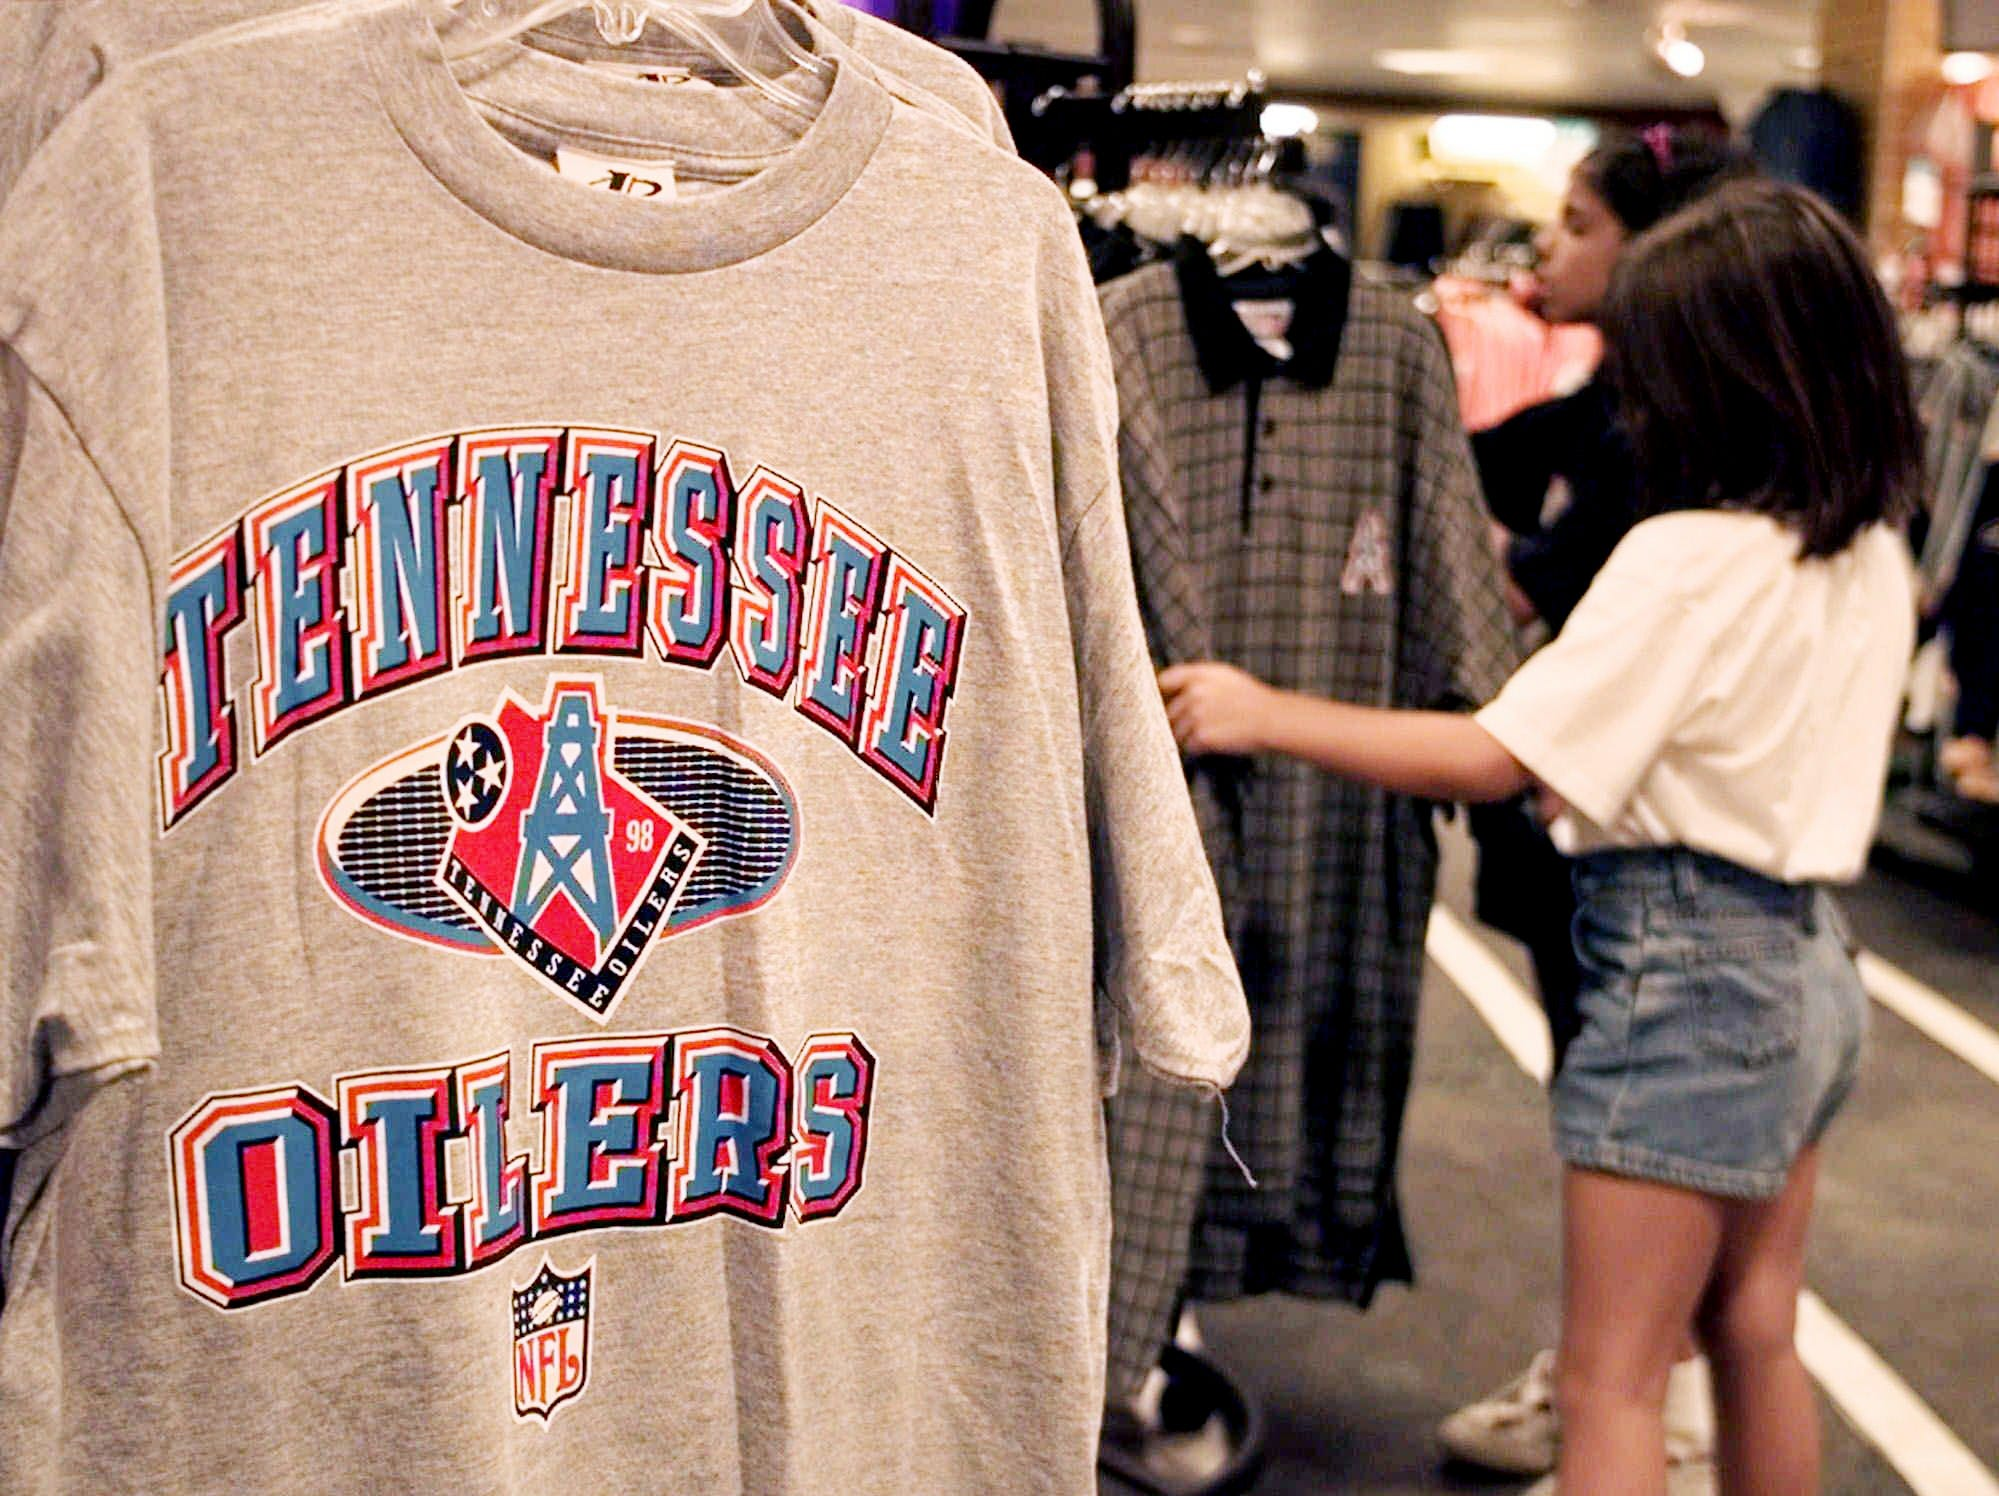 Tennessee Oilers' merchandise is displayed in a Nashville department store Aug. 6, 1998. For the first time in nearly 20 years, Oilers merchandise is flying off the shelves. All it took was a promised name change from Tennessee owner Bud Adams to turn the derrick logo into a collectable.